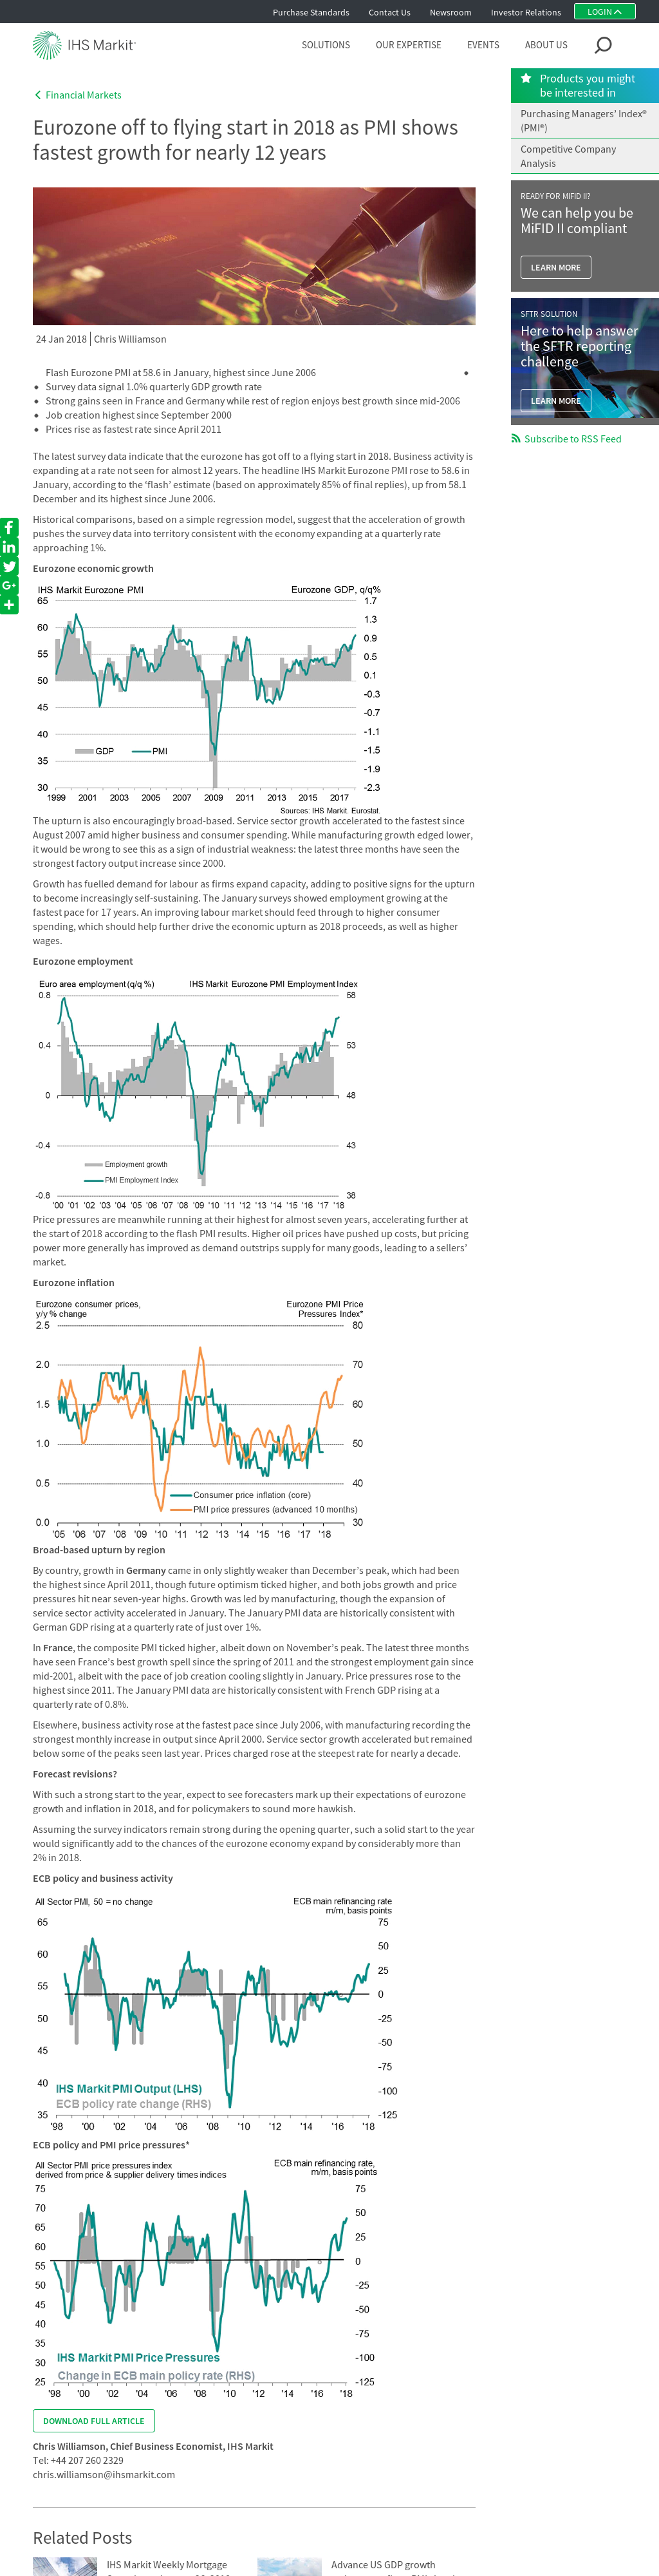 Latest PMI indicate Eurozone off to a flying start in 2018